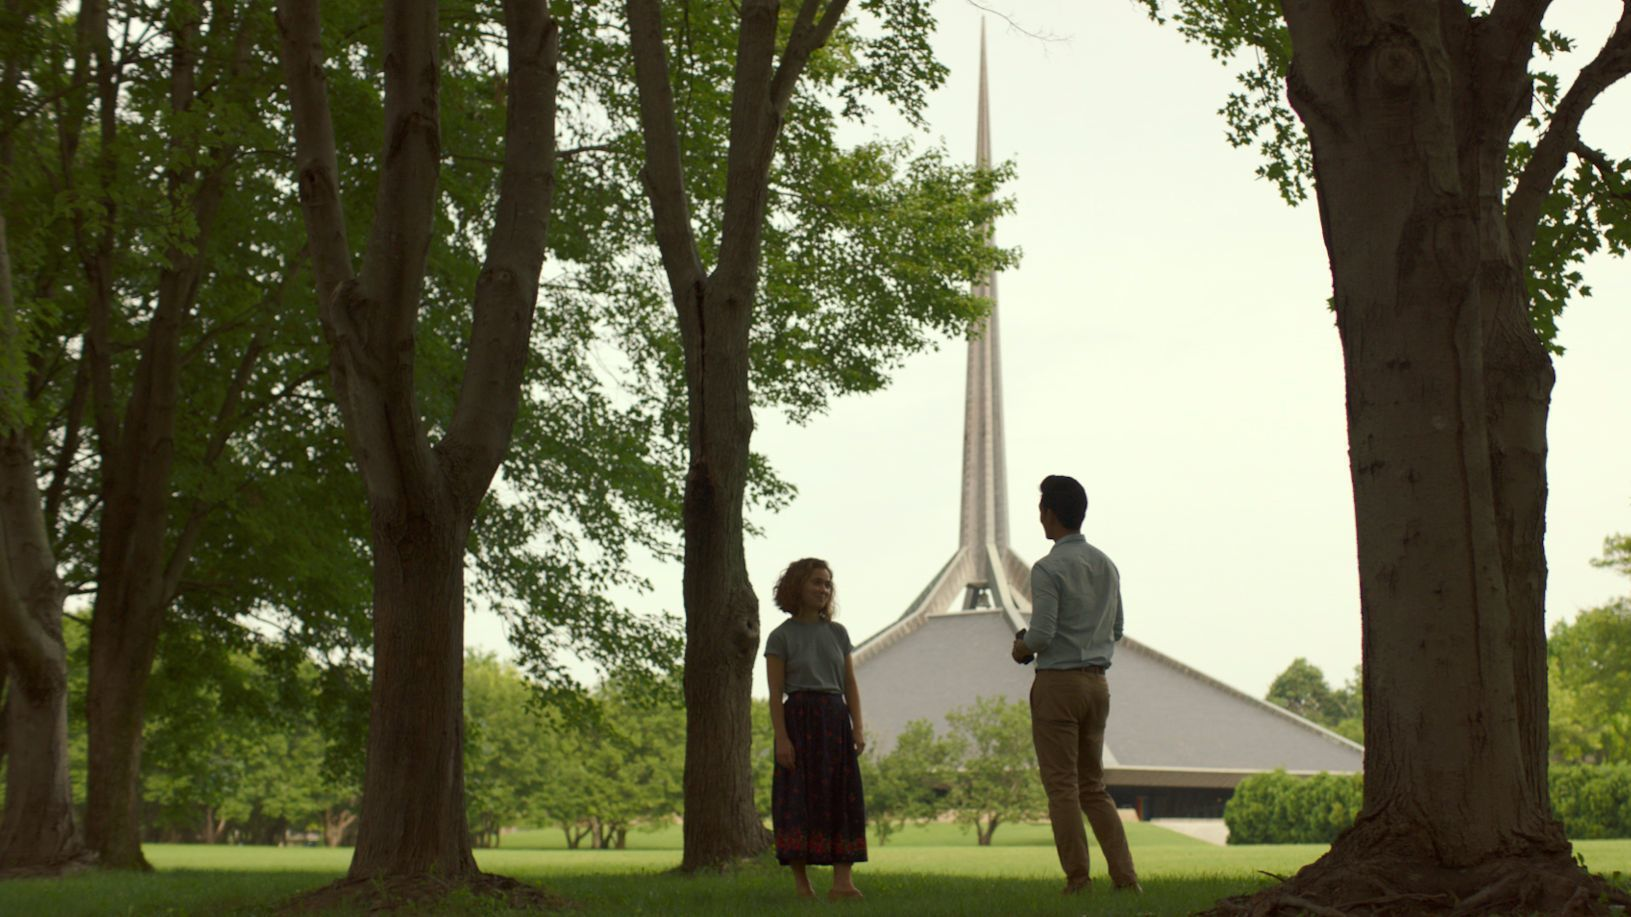 Actors Haley Lu Richardson and John Cho against the backdrop of the North Christian Church by architect Eero Saarinen. (Elisha Christian/Superlative Films)